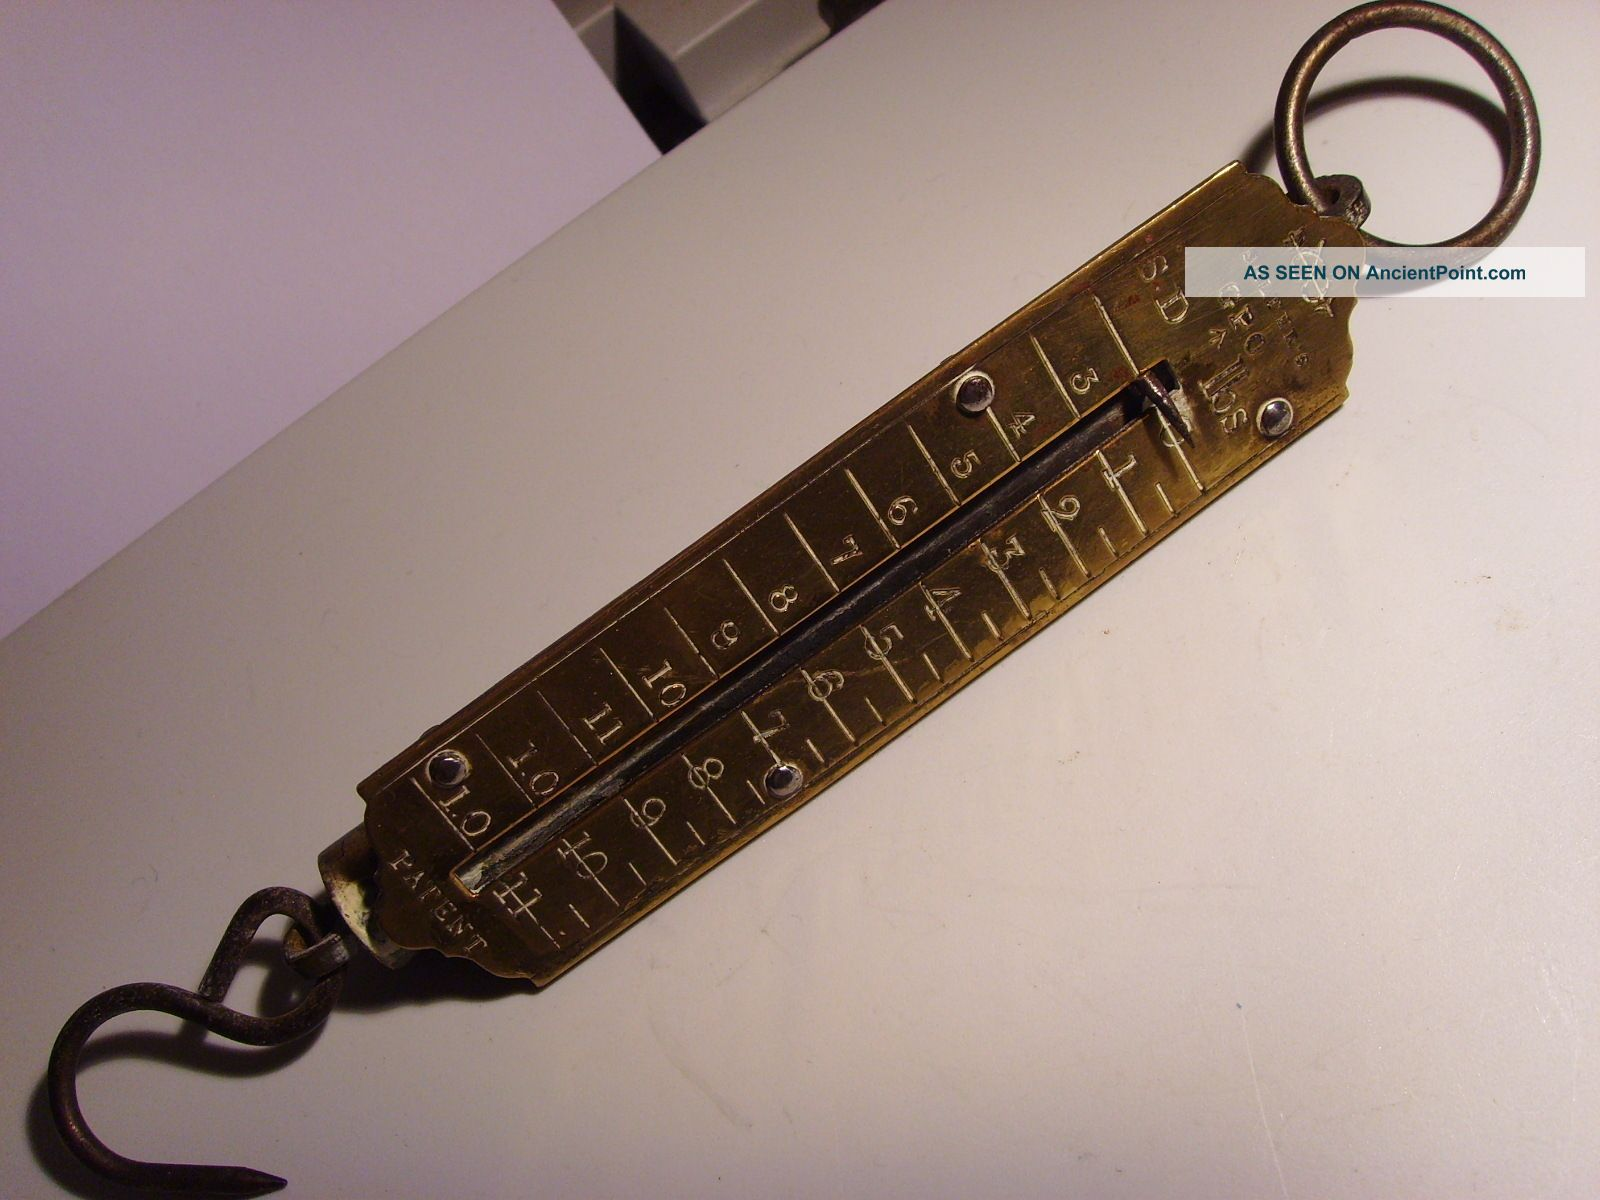 Vintage Brass Salter G.  P.  O.  Spring Balance Scales 11 Pound Maximum Weight Other photo